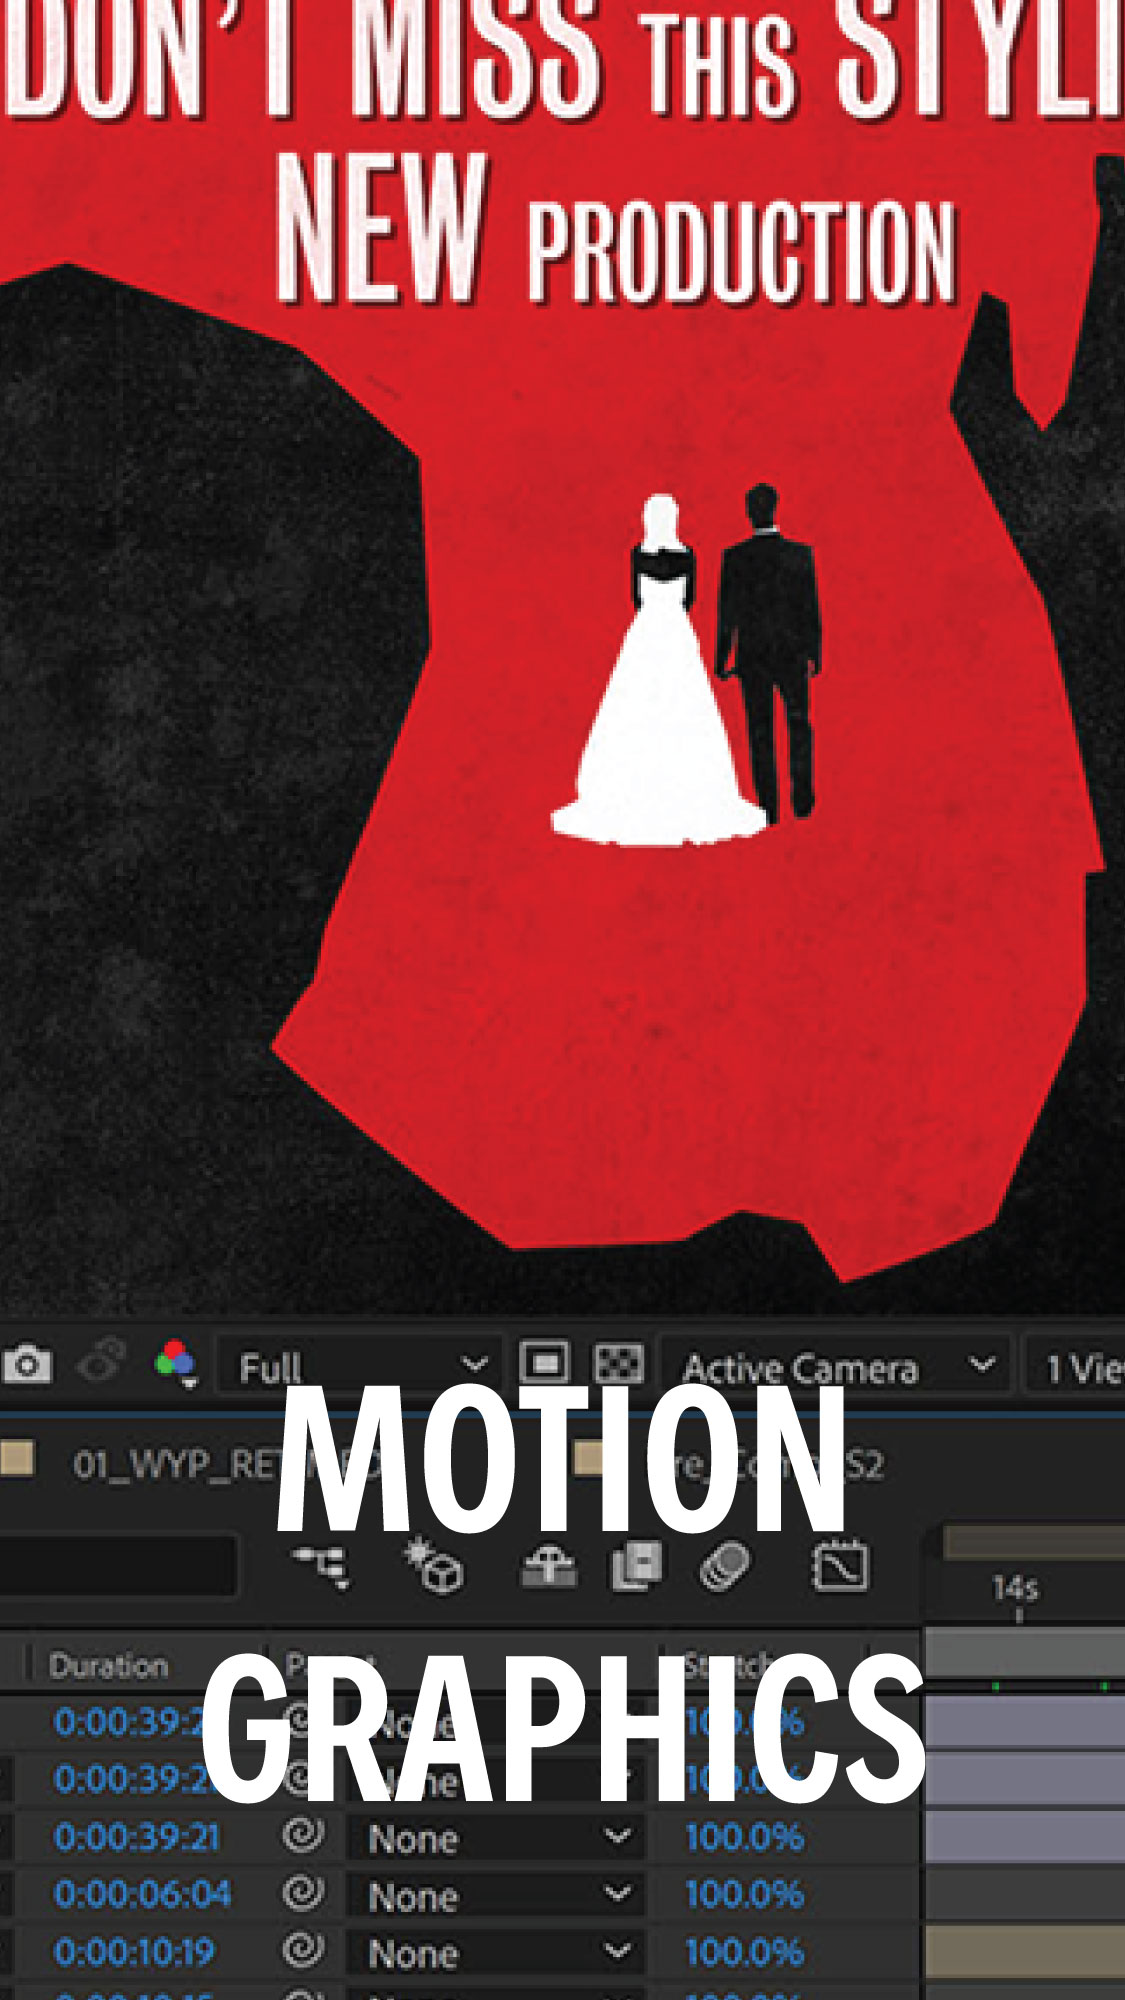 MOTION-GRAPHICS